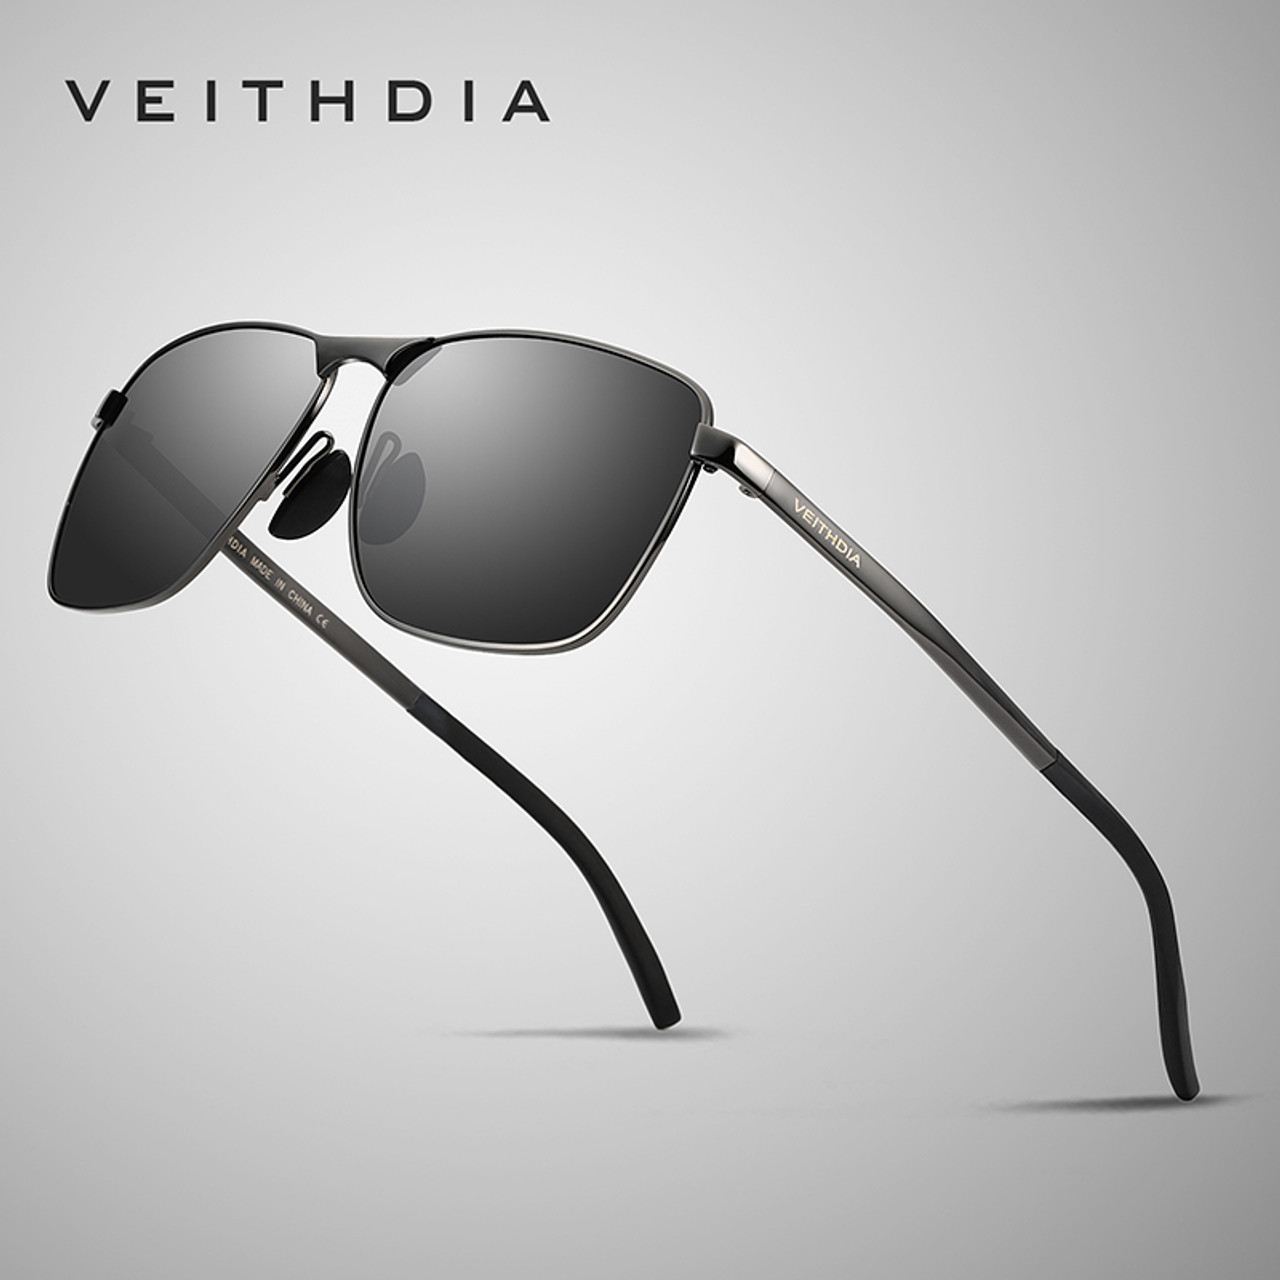 59629badf21 Veithdia 2018 Brand Designer Fashion Square Sunglasses Mens Polarized  Coating Mirror Sun Glasses Eyewear Accessorie For ...